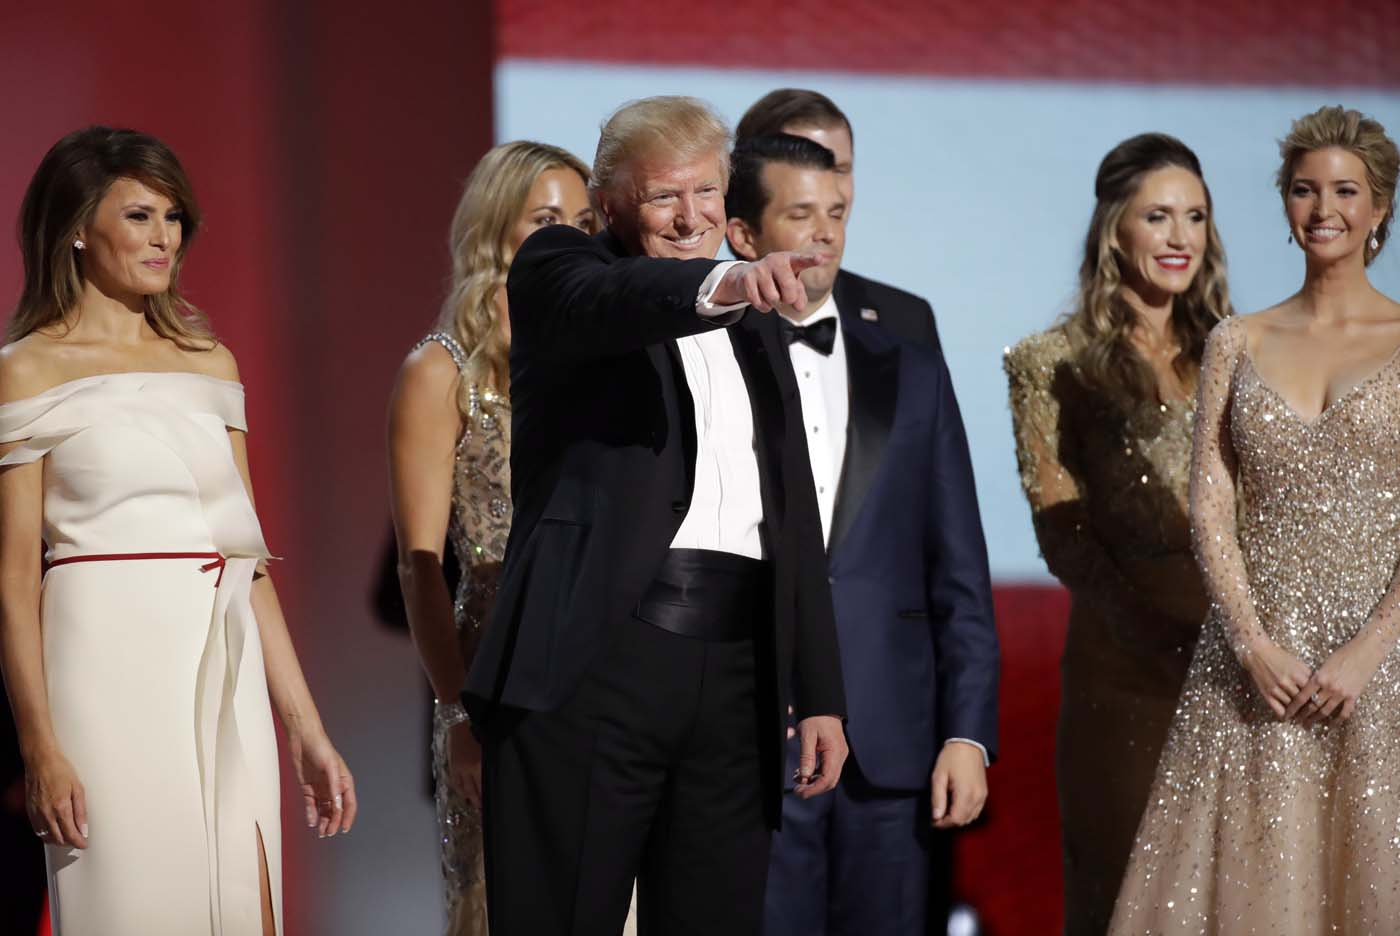 President Donald Trump, center, acknowledges supporters after dancing with first lady Melania Trump, left, and family at the Liberty Ball, Friday, Jan. 20, 2017, in Washington. (AP Photo/Patrick Semansky)